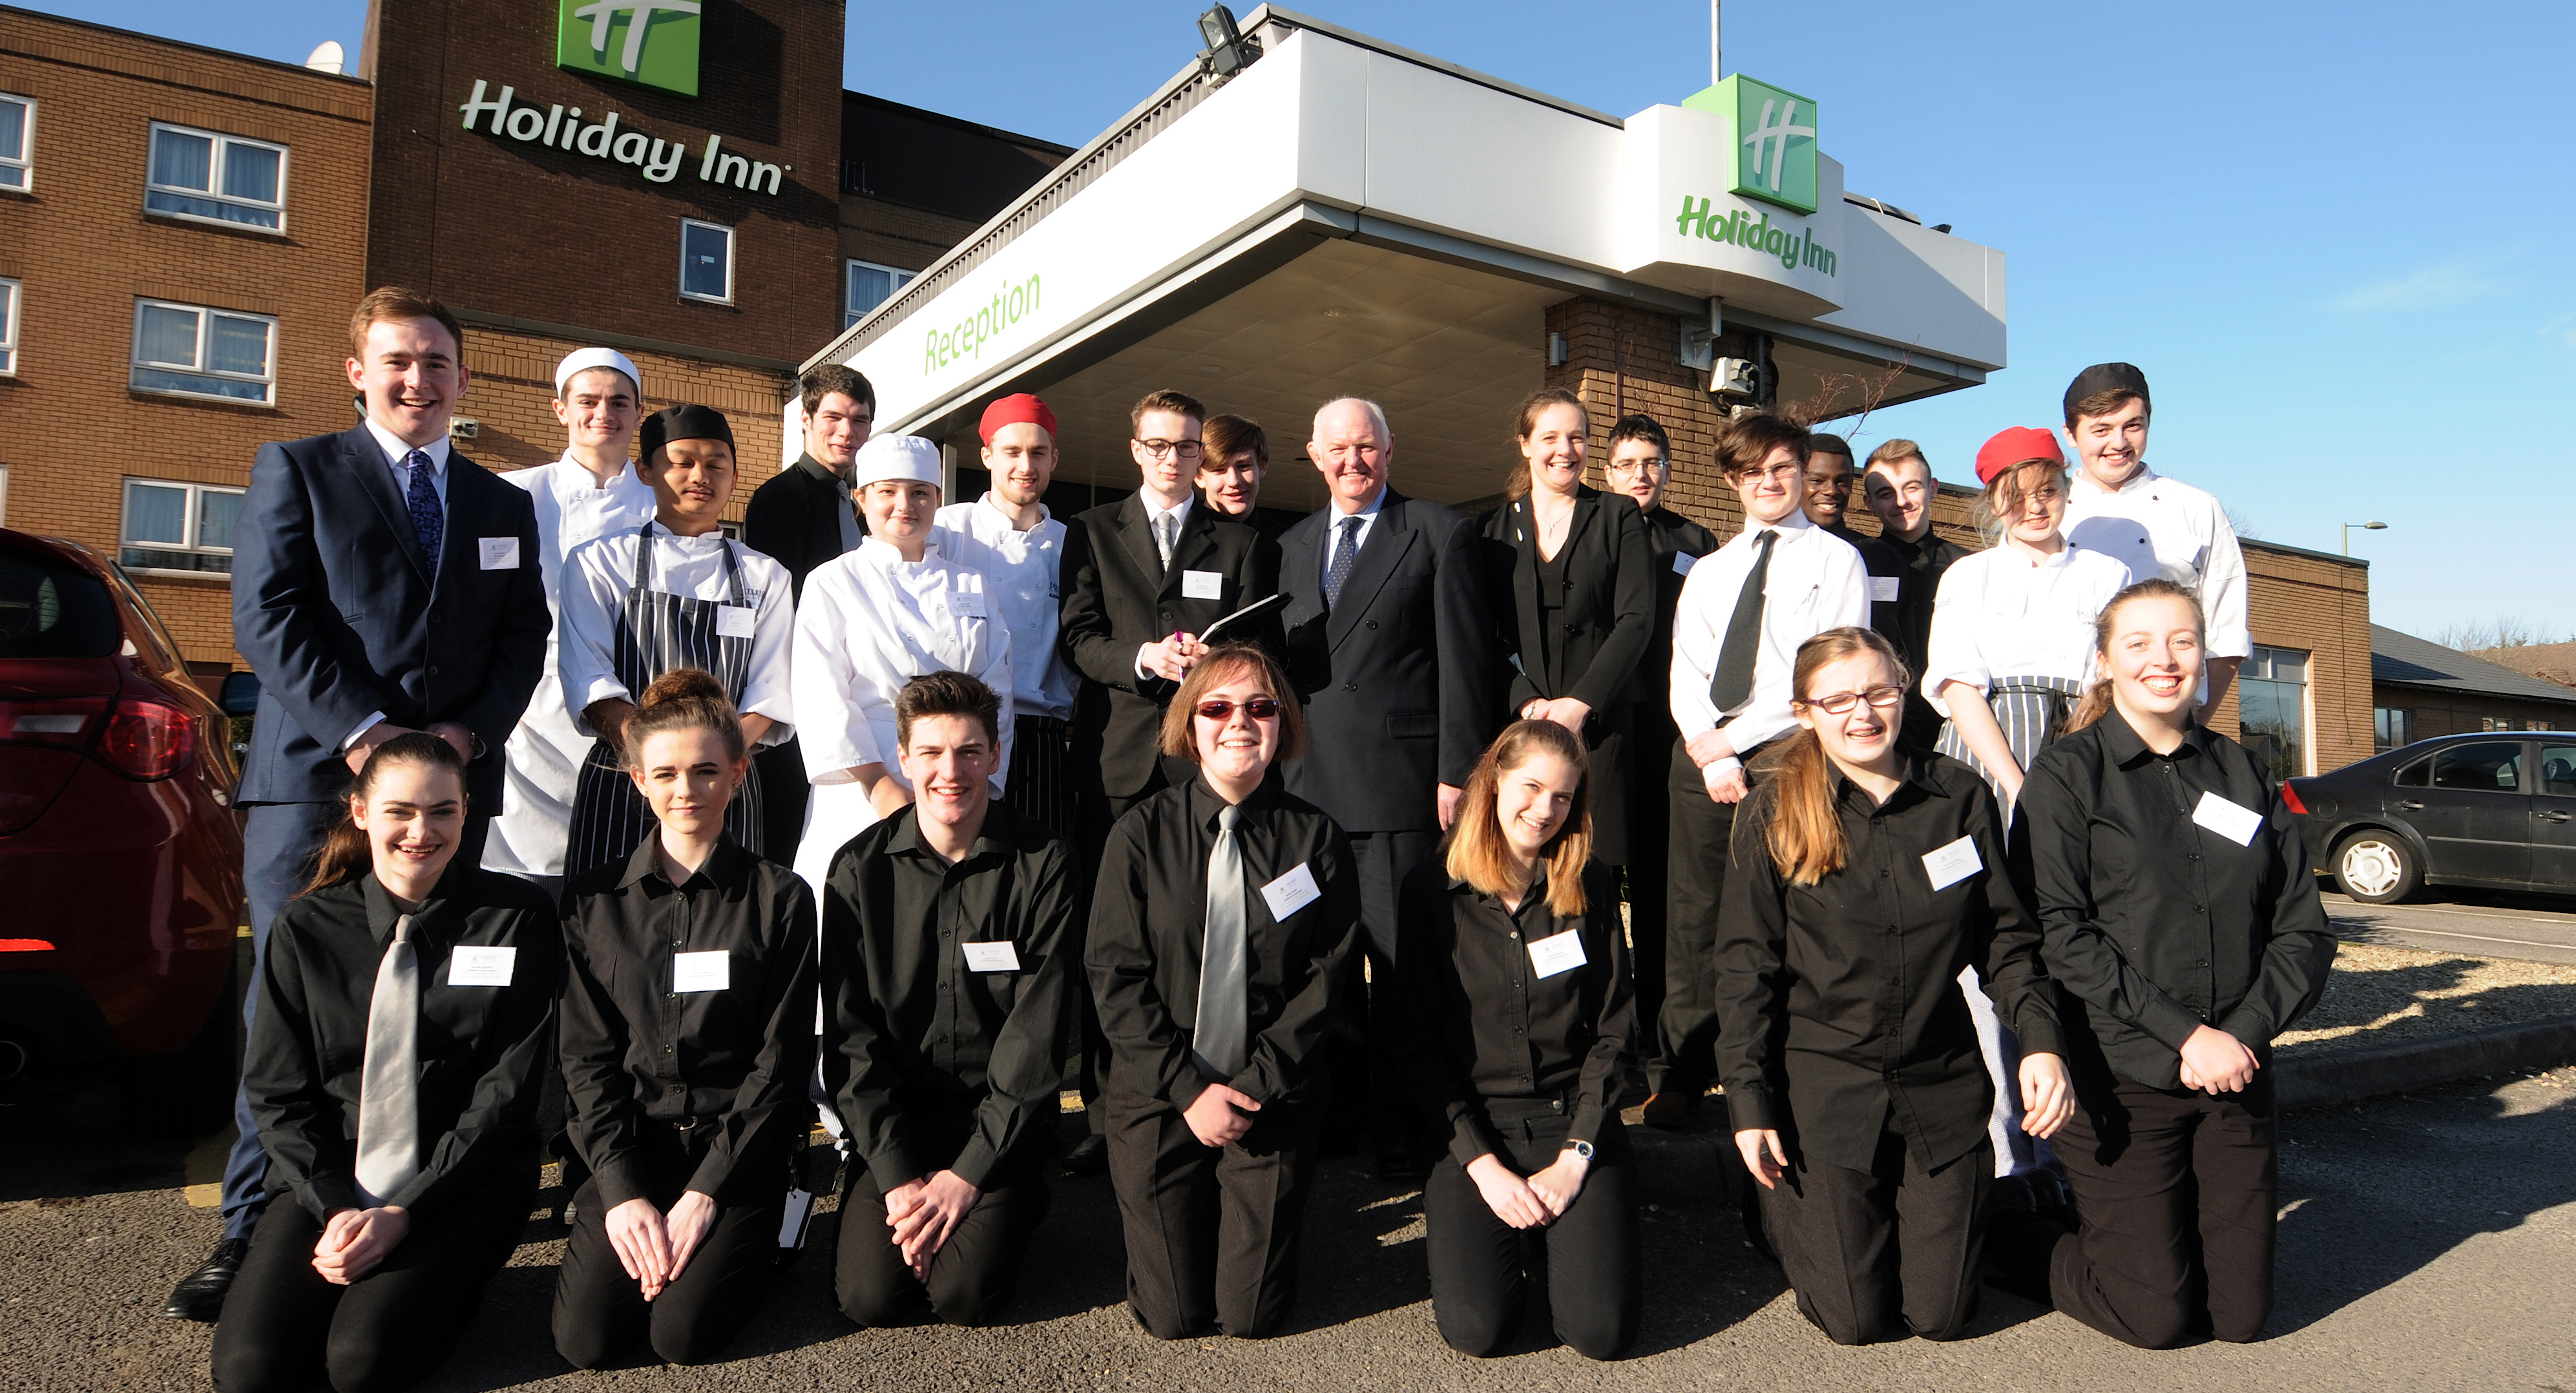 Hospitality and Catering students manage the Holiday Inn!